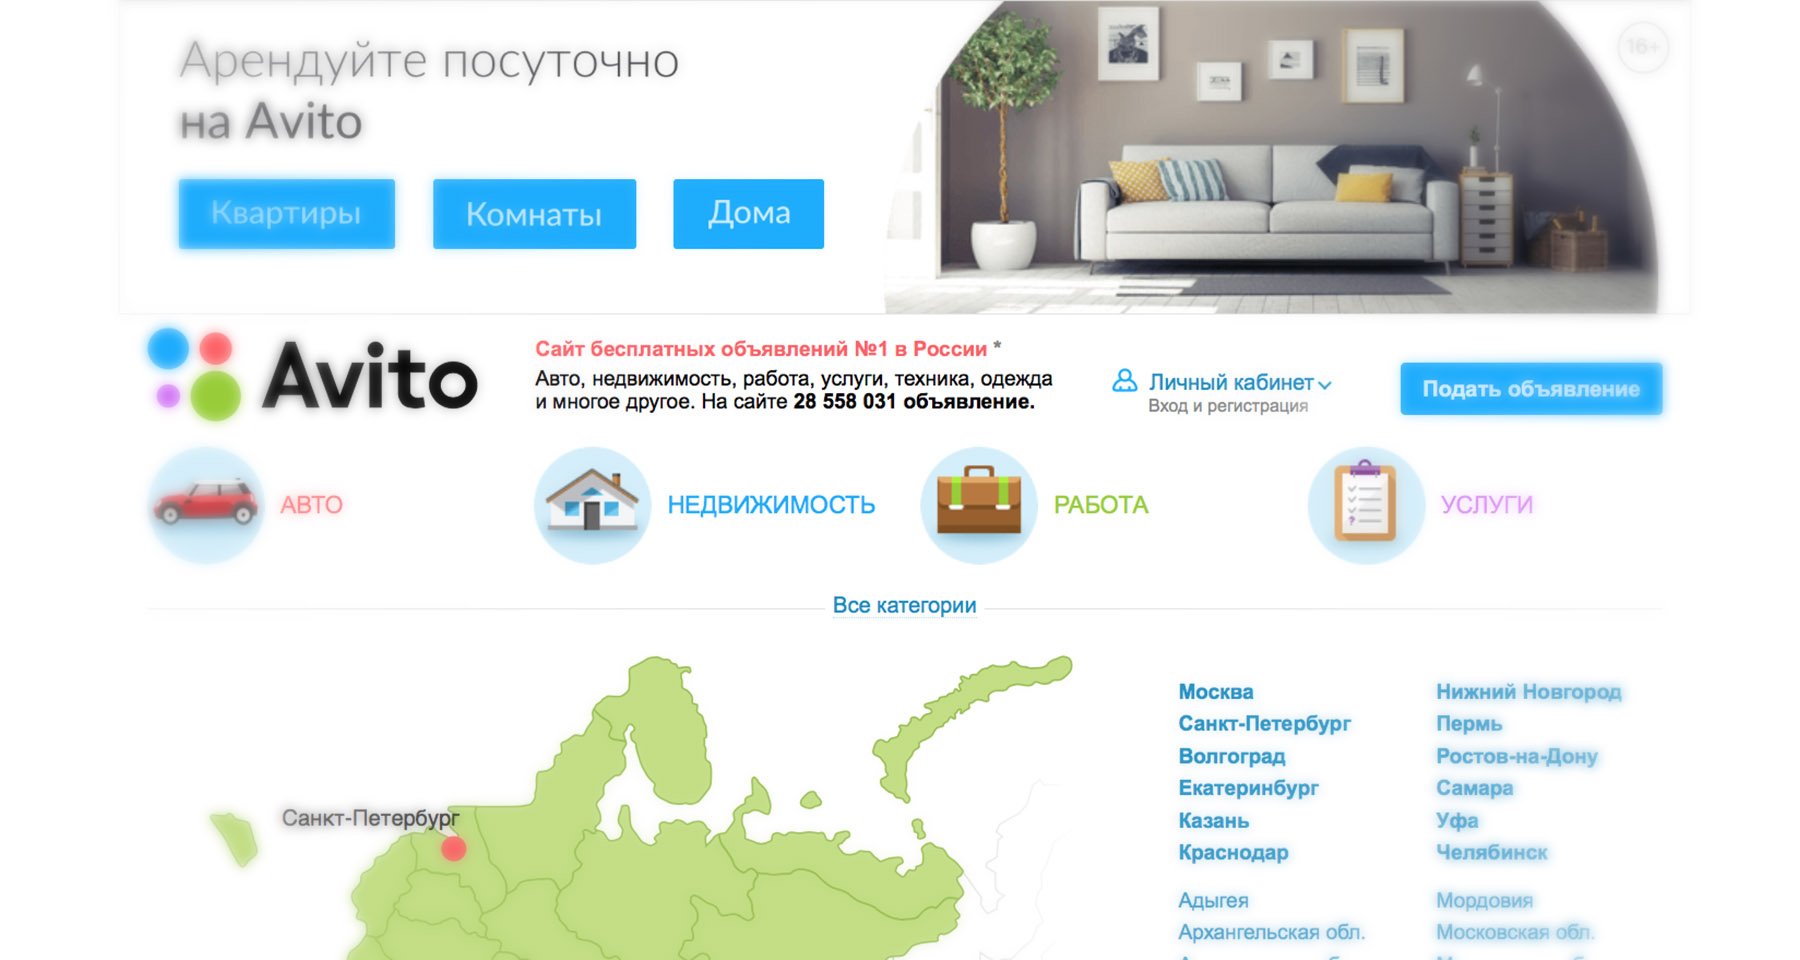 Avito monetises online classified ads with detailed analysis-based approach